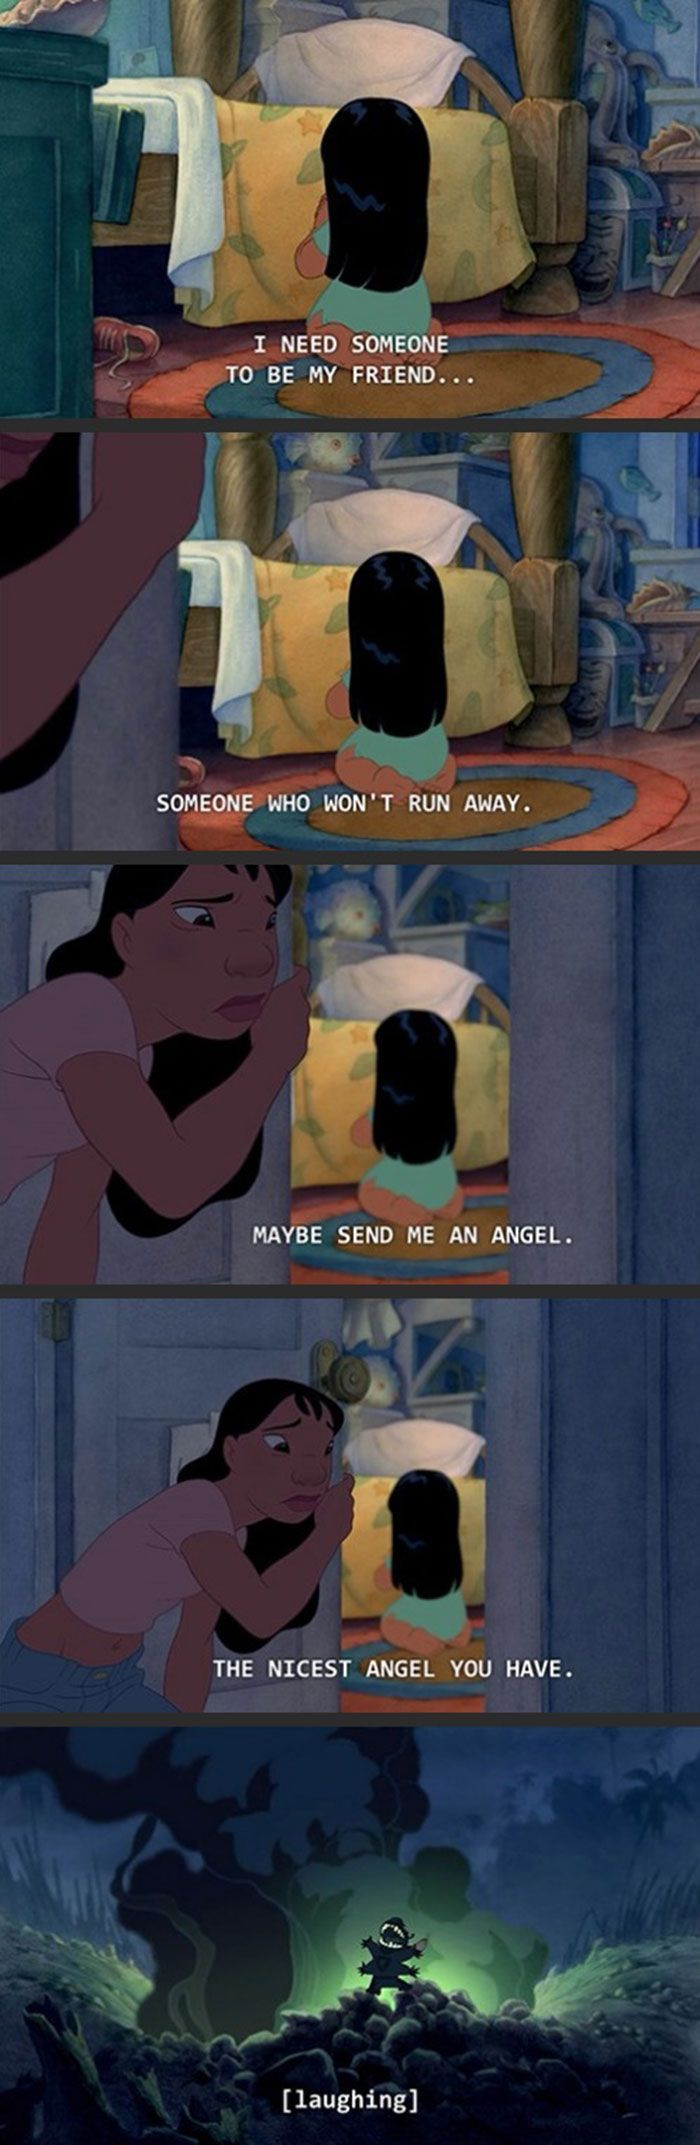 I think I need to watch Lilo and Stitch again... - LolSnaps